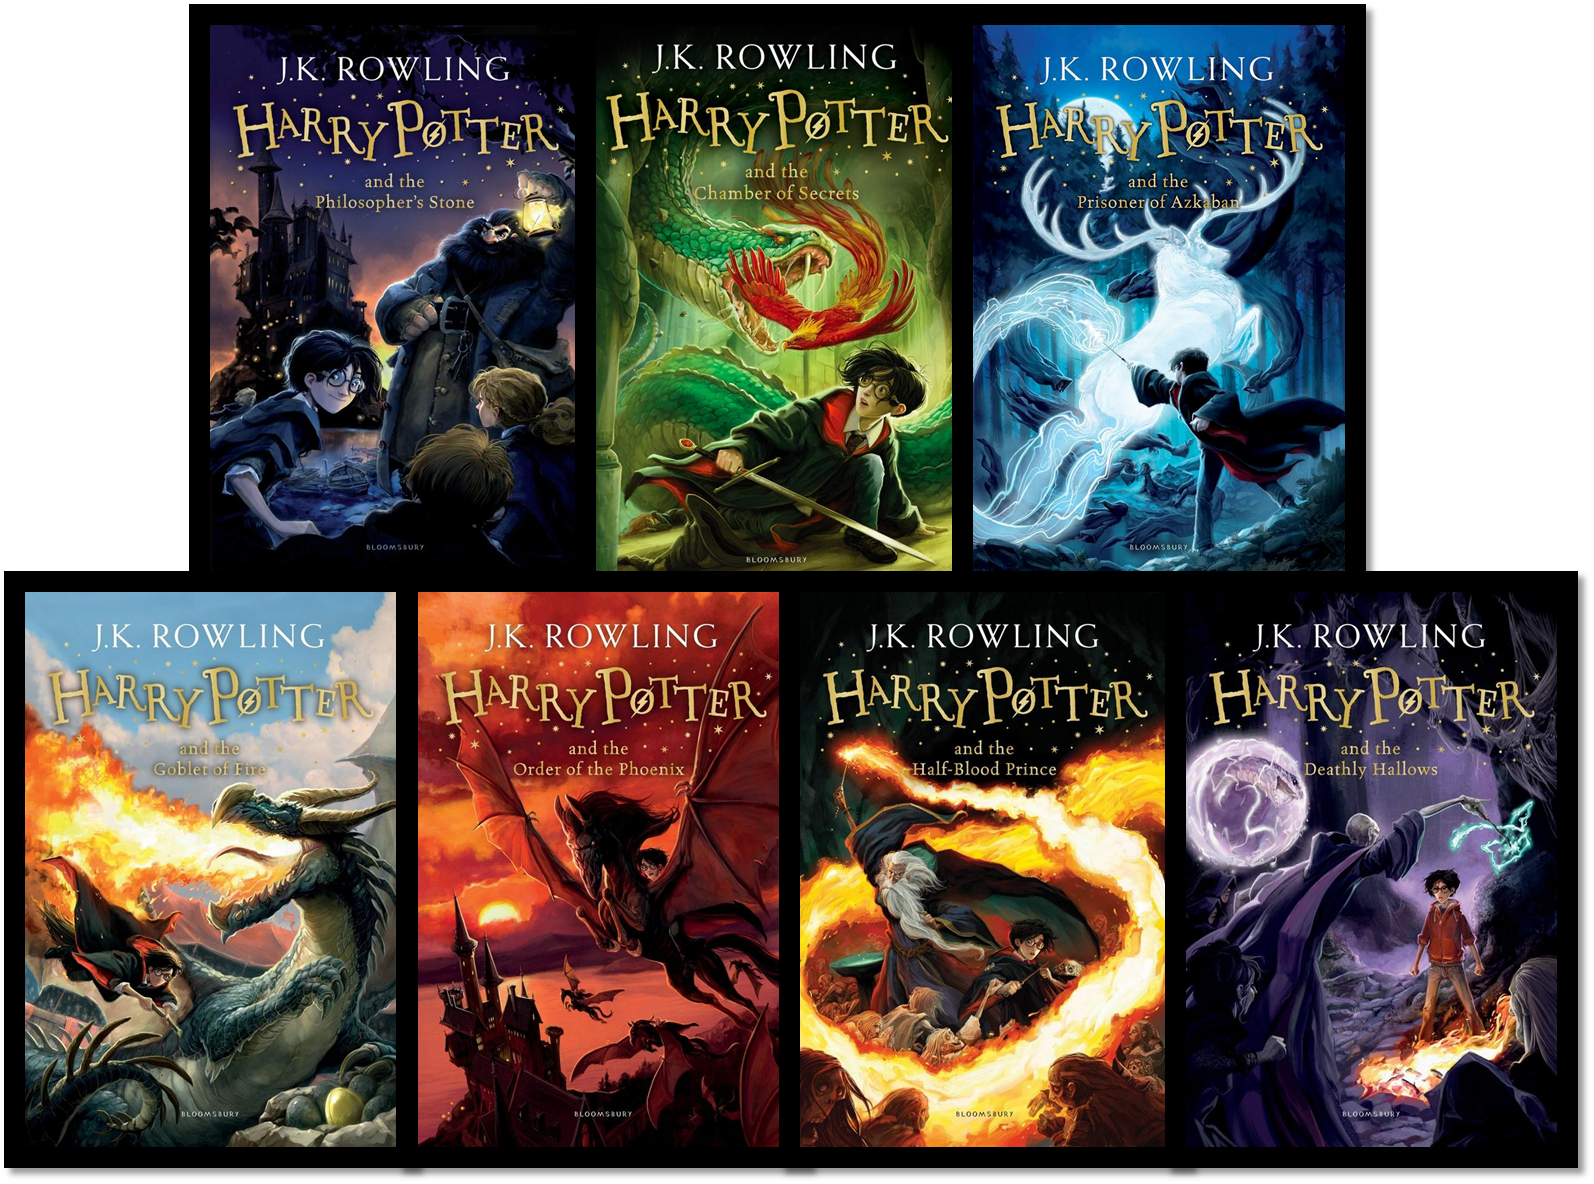 Harry Potter Book Cover Image ~ Bloomsbury new harry potter covers and artist interview